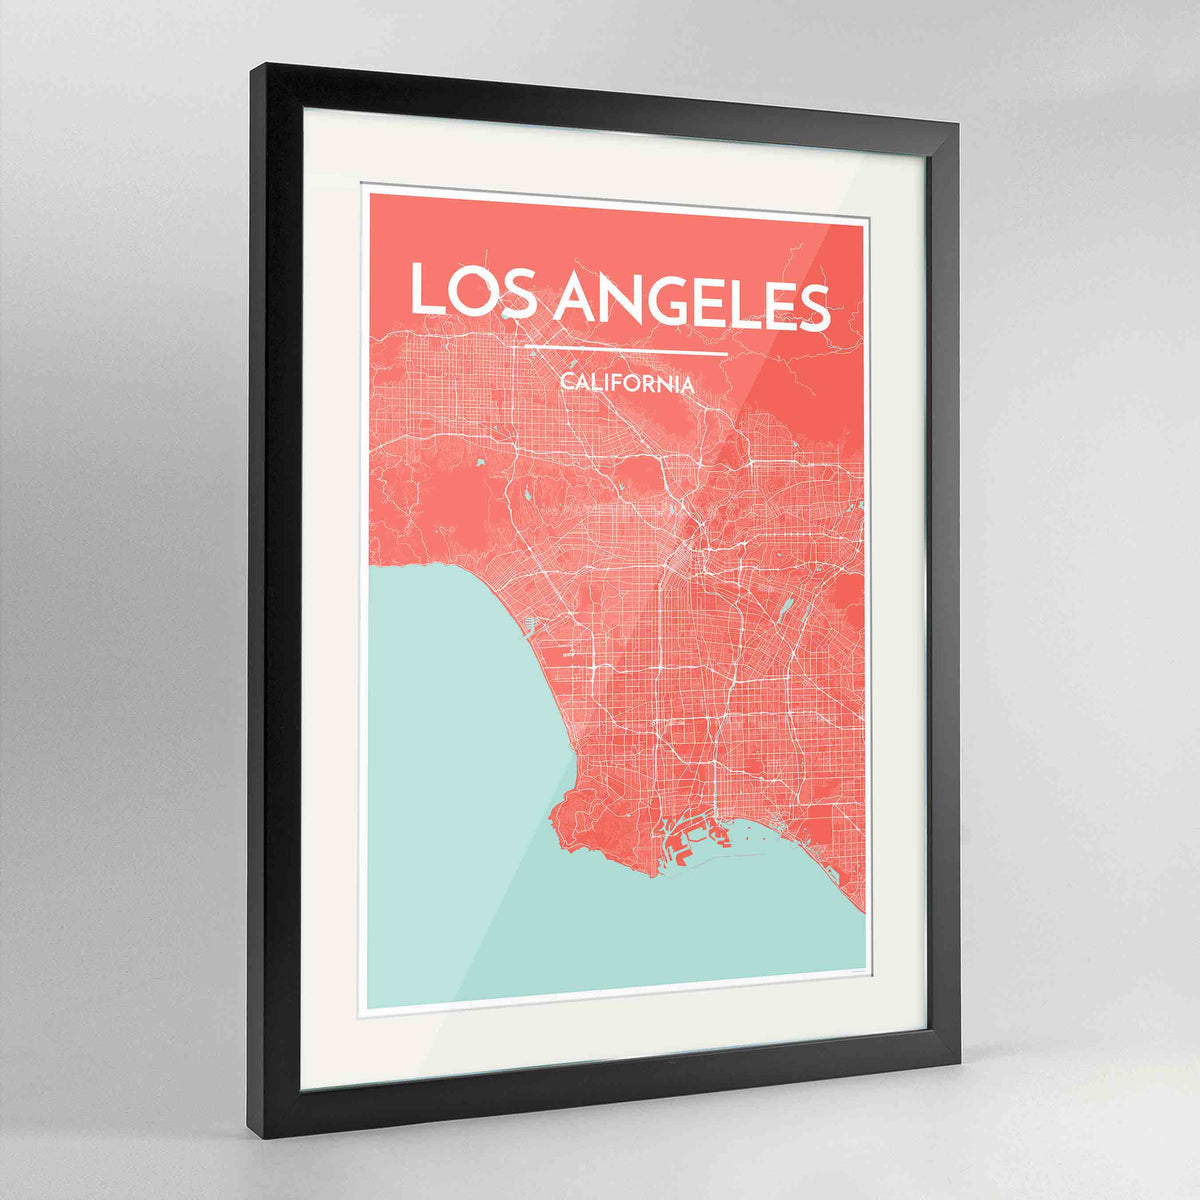 "Framed Los Angeles Map Art Print 24x36"" Contemporary Black frame Point Two Design Group"